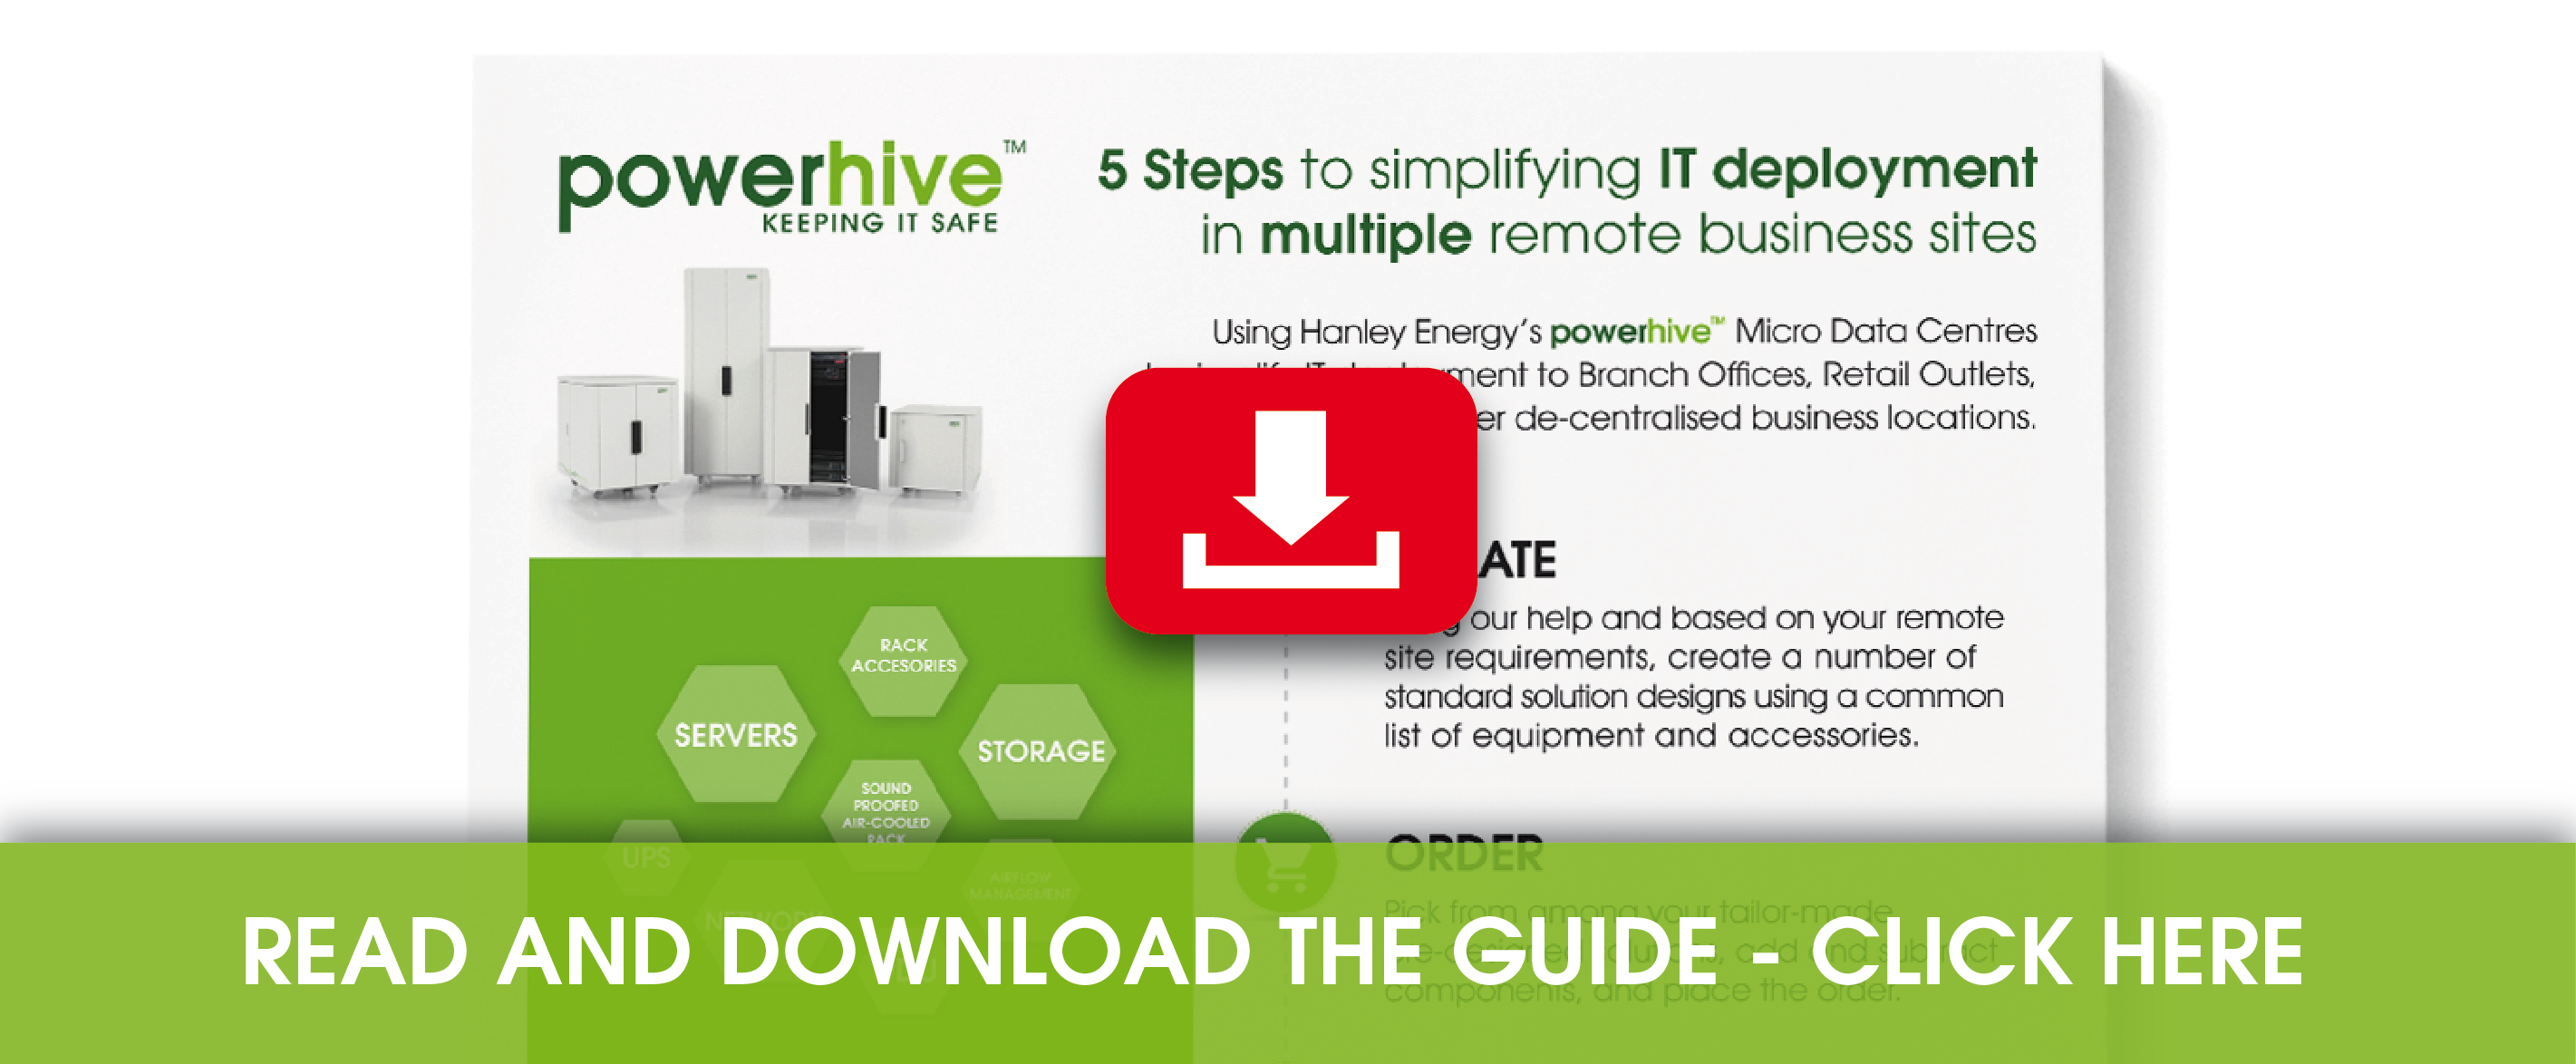 Powerhive 5 Steps download